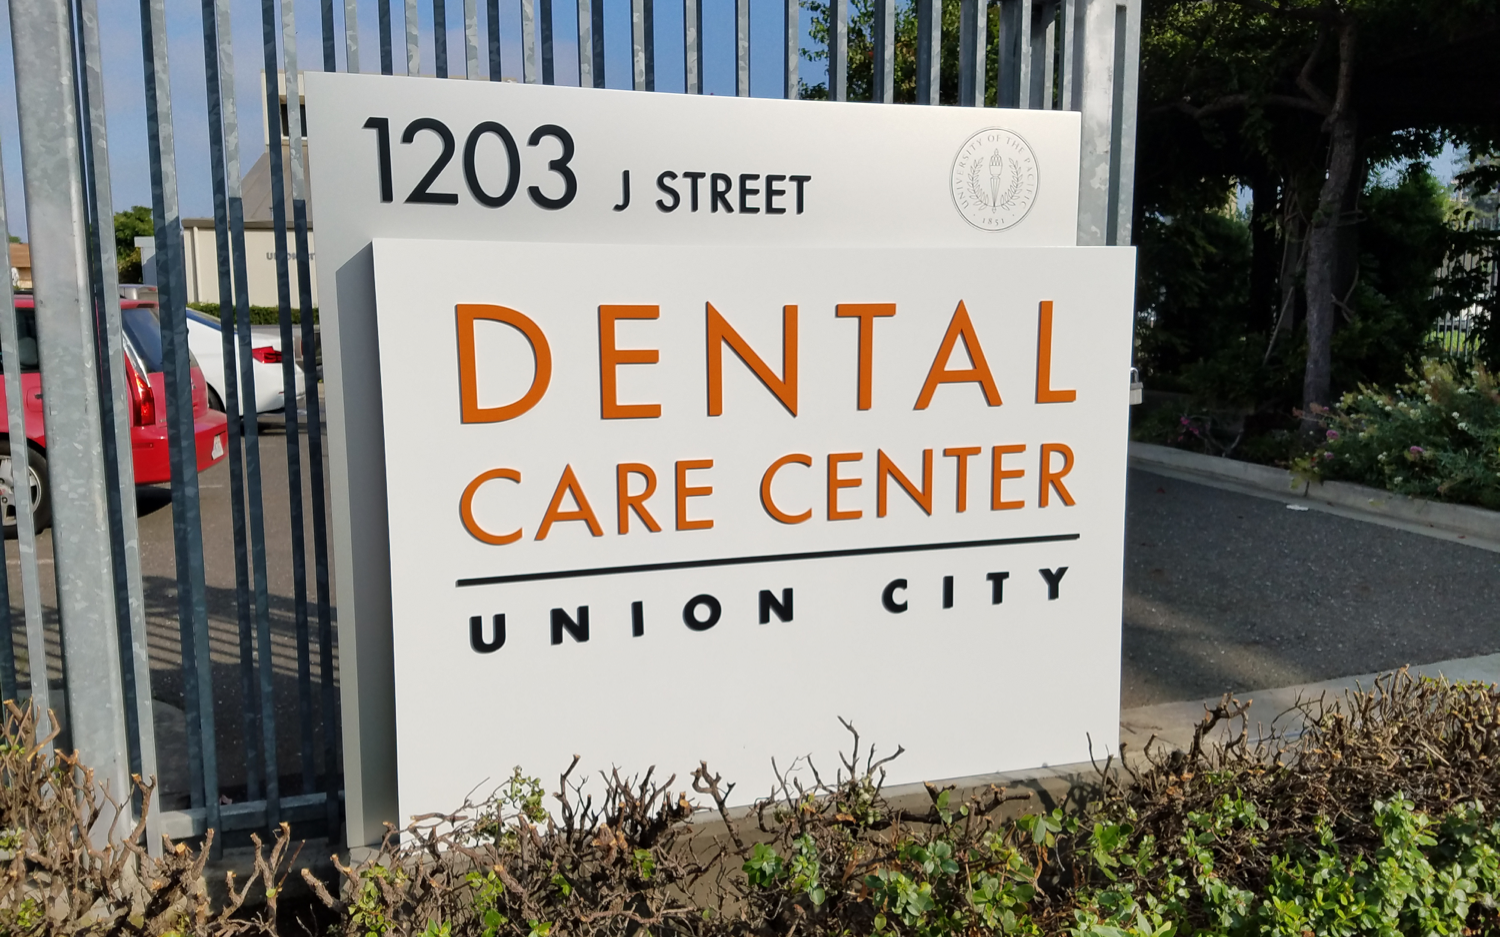 Dental Care Center Sign